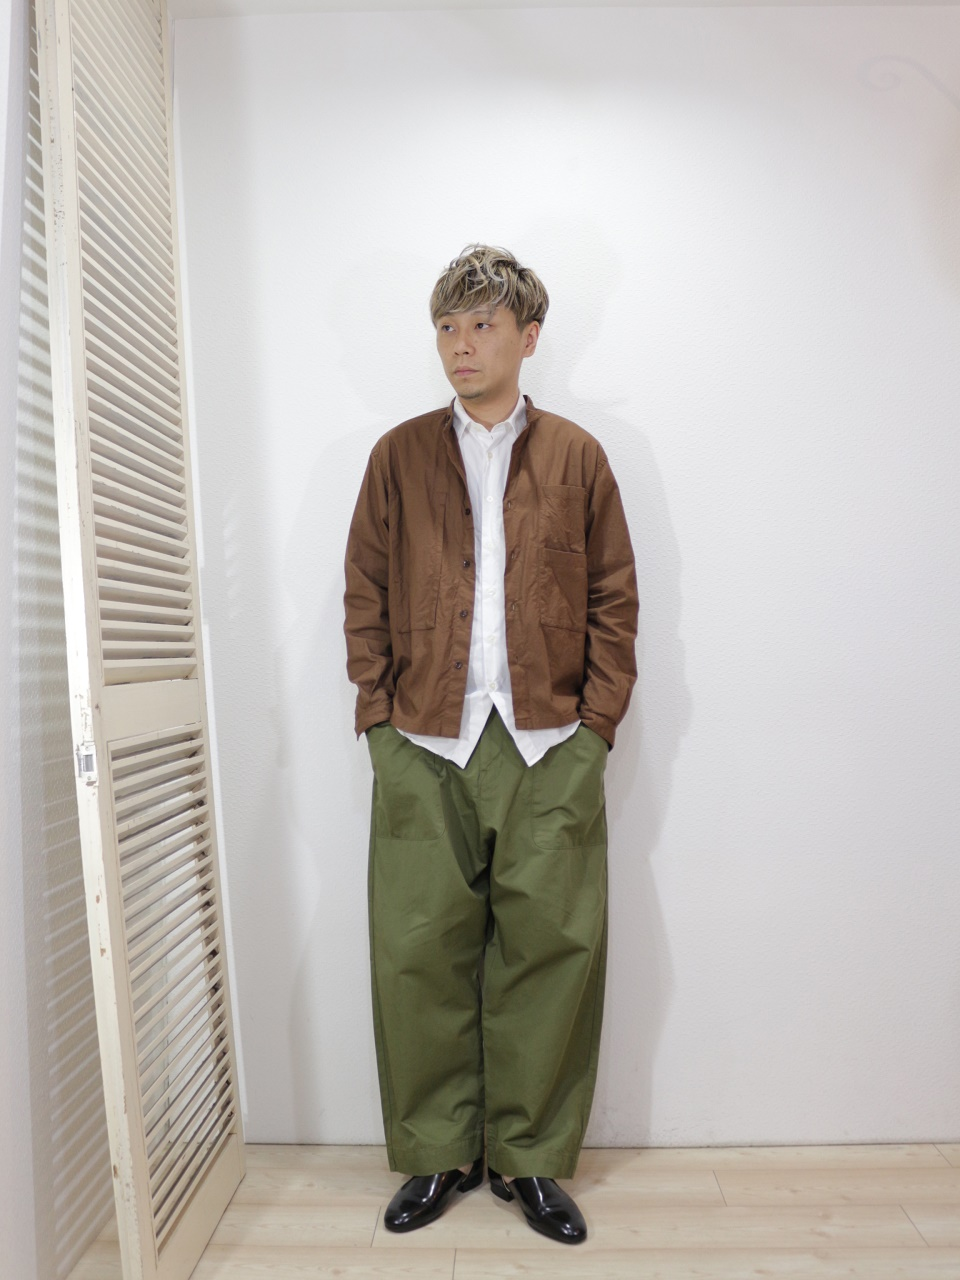 outer/MANUAL ALPHABET-GACHAPOKE BANDCOLLAR JACKET(SIZE 1)shirt/MANUAL ALPHABET-LOOSE FIT REGULAR COLLAR SHT(SIZE 1)pants/KAFIKA-FLANDERS LINEN DECK PANTS(SIZE 2)を使ったコーディネート